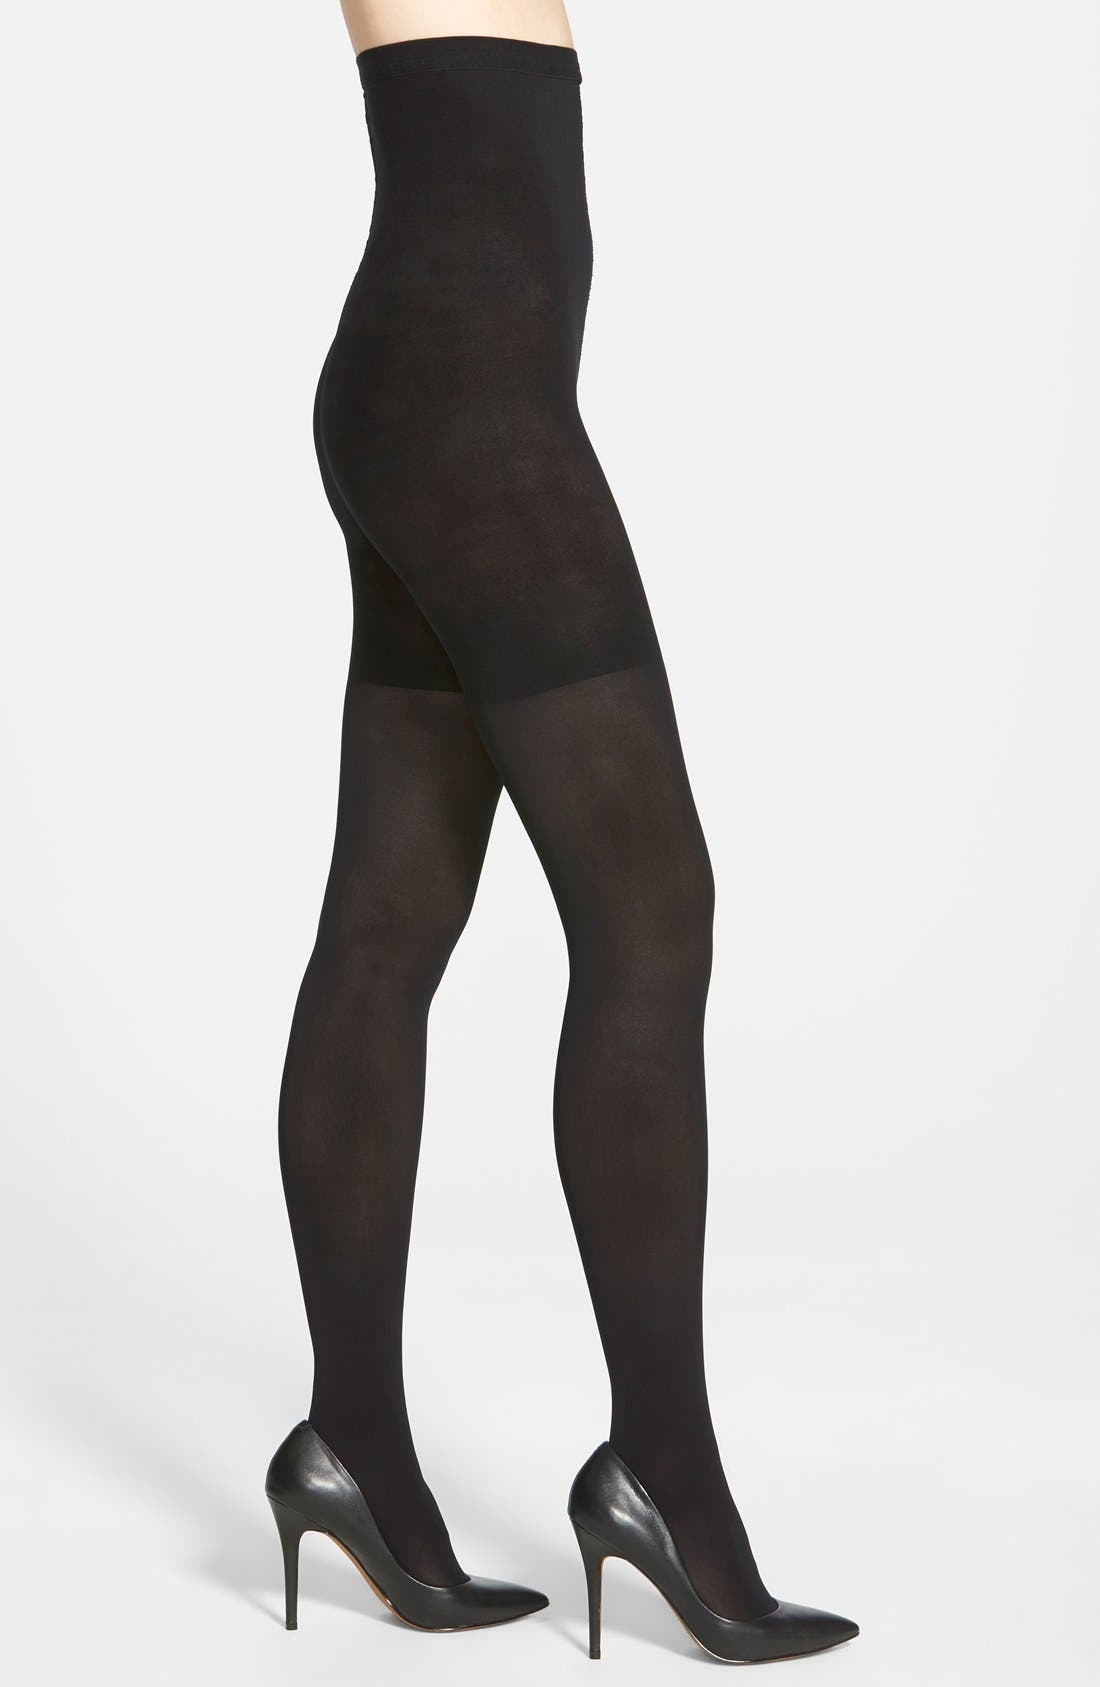 Luxe Tights,                             Main thumbnail 1, color,                             VERY BLACK